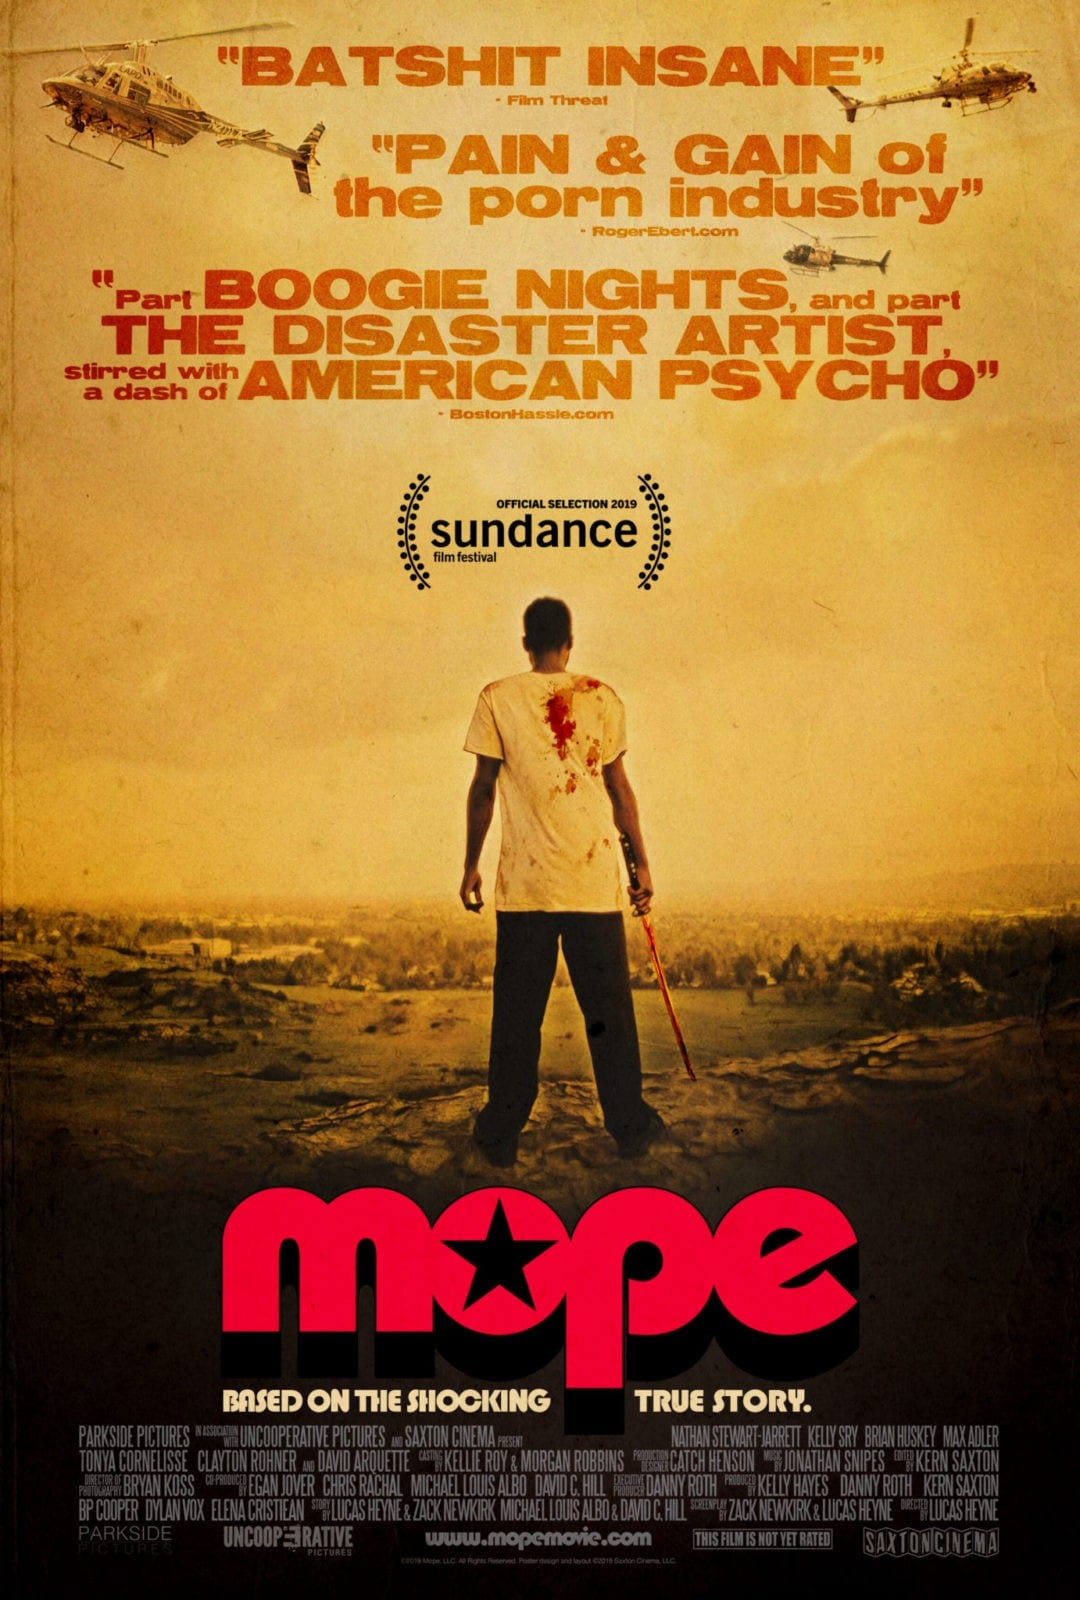 Mope, A Movie About A Crime In The Porn Industry - Mother of Movies